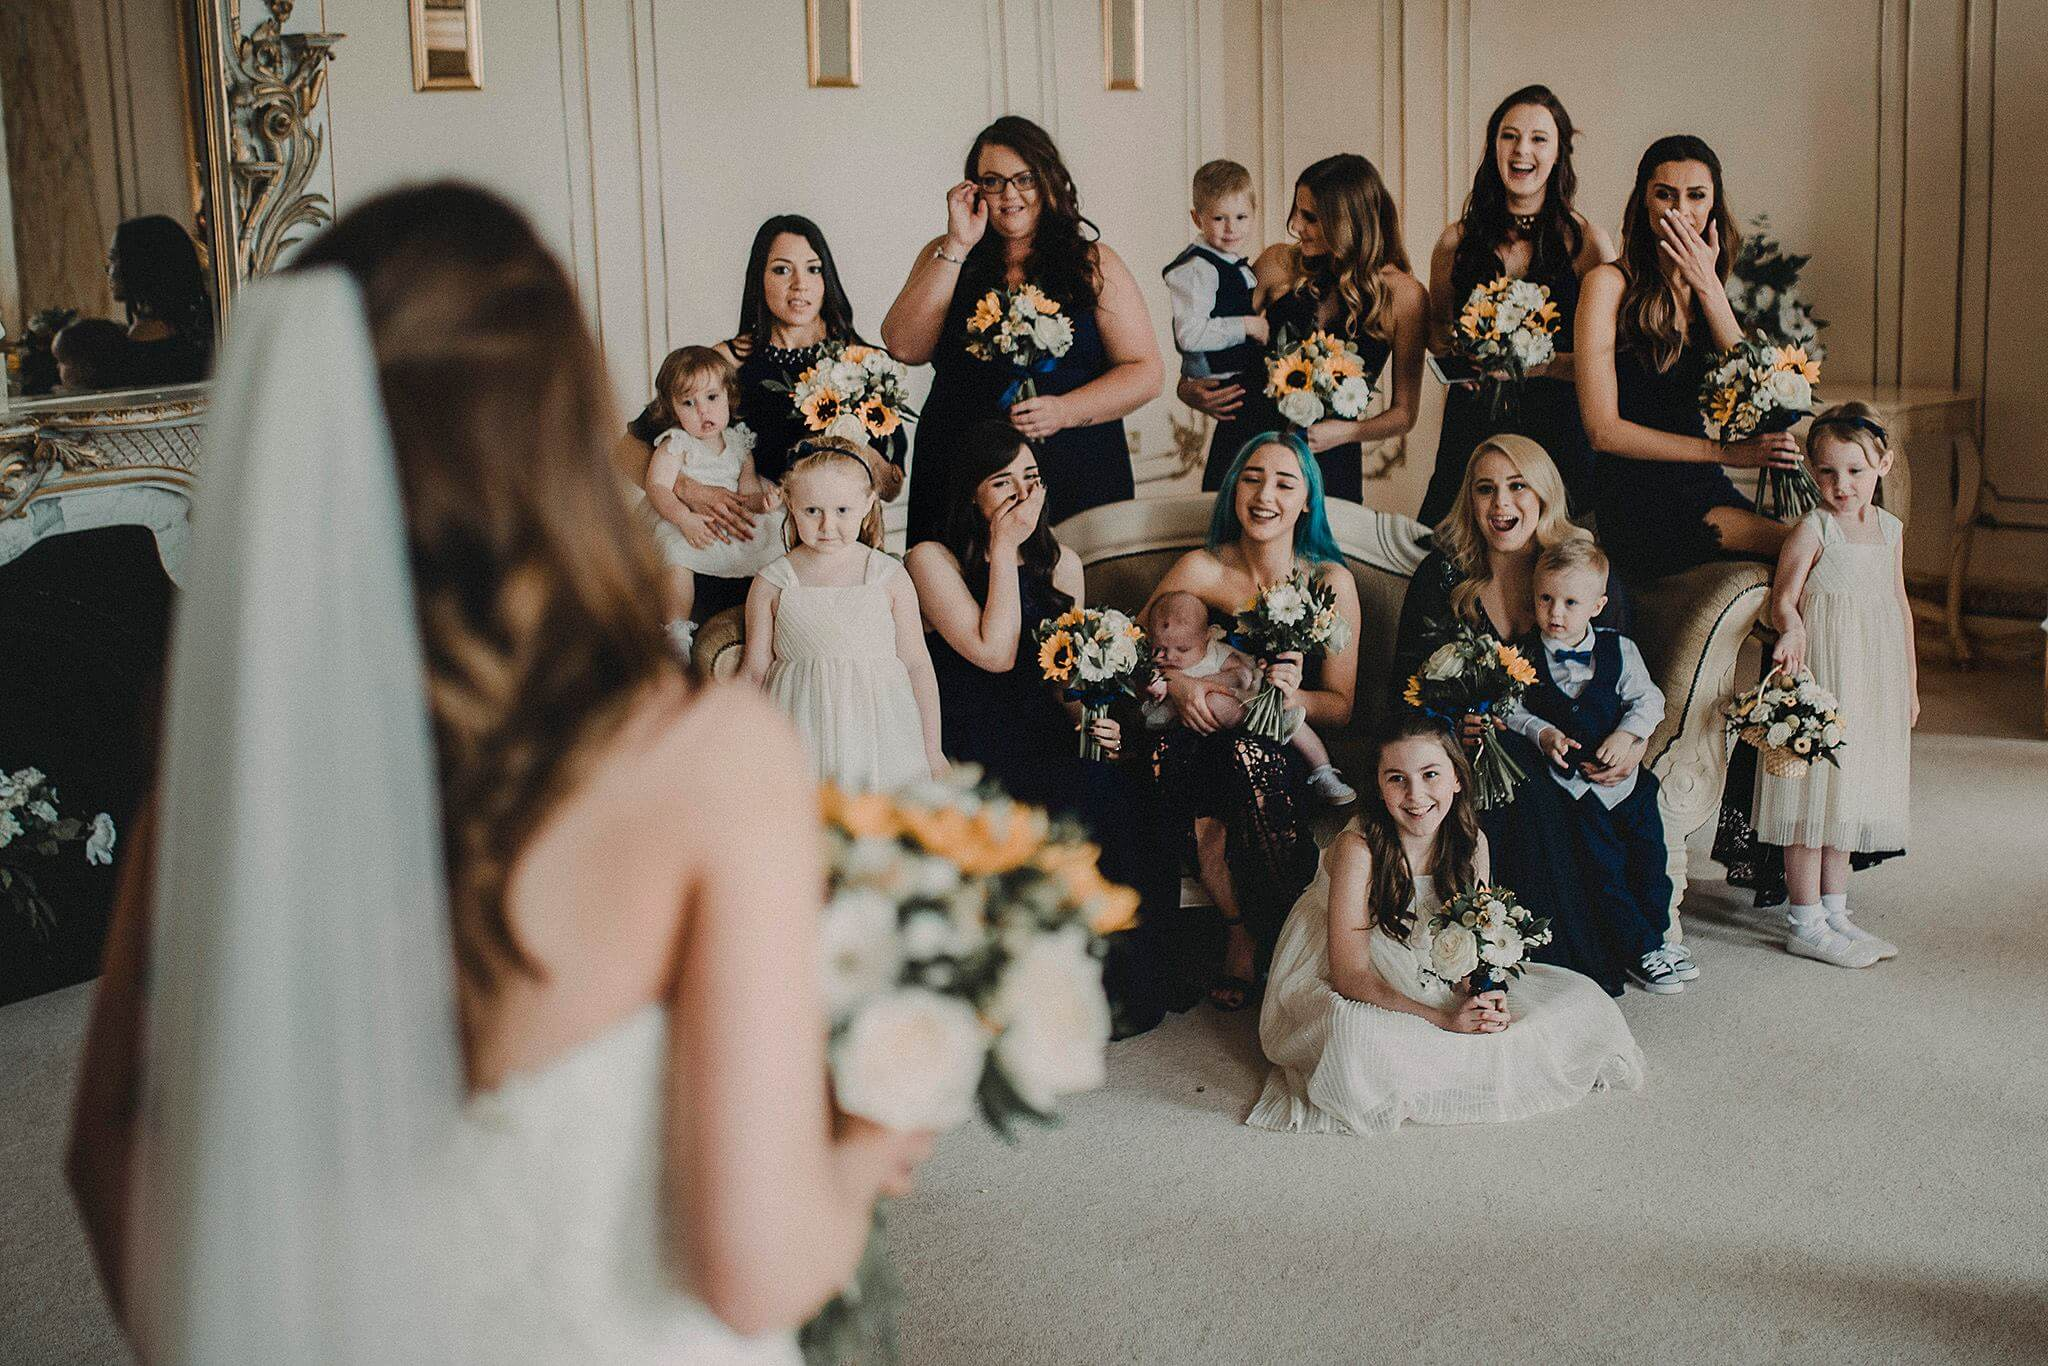 wedding-photographer-and-videographer-gosfield-hall-07